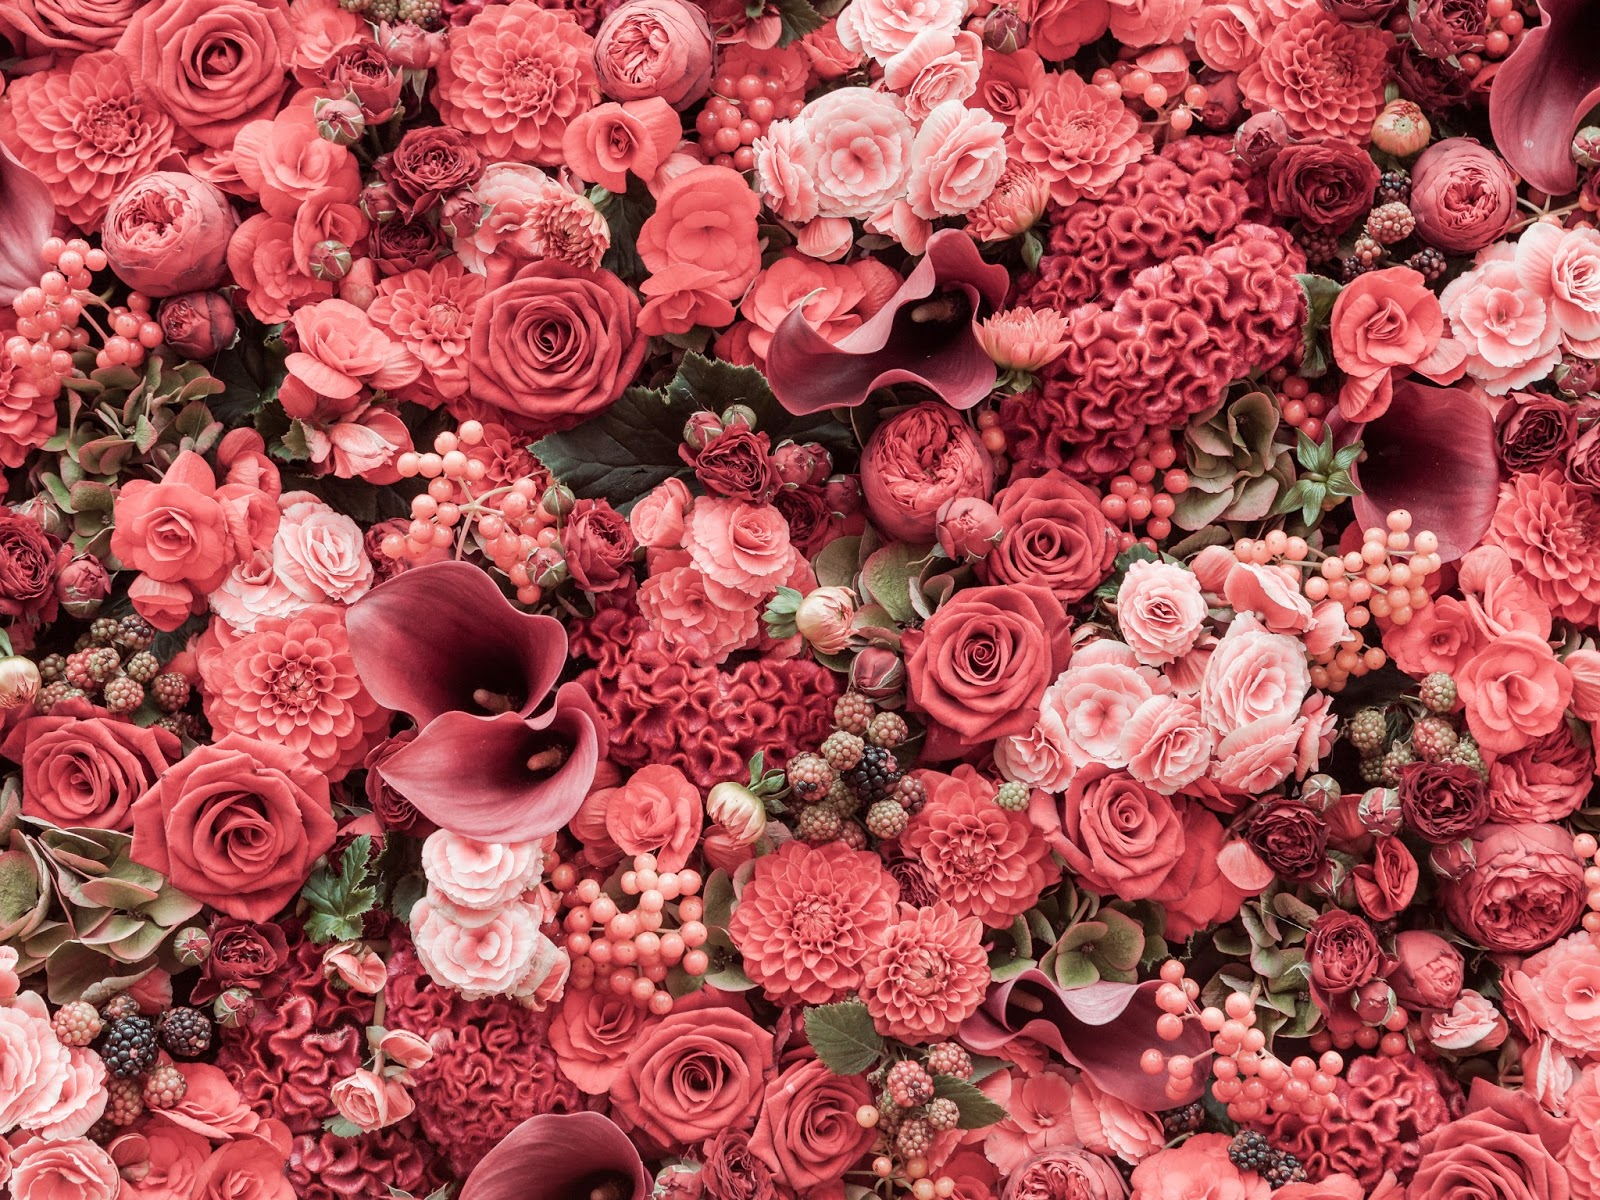 Send flowers to india flowers delivery in india flowers online india flowers are the most amazing and lovely creations which can easily grab the heart of people seeing them they are the fantastic constituent of mother nature izmirmasajfo